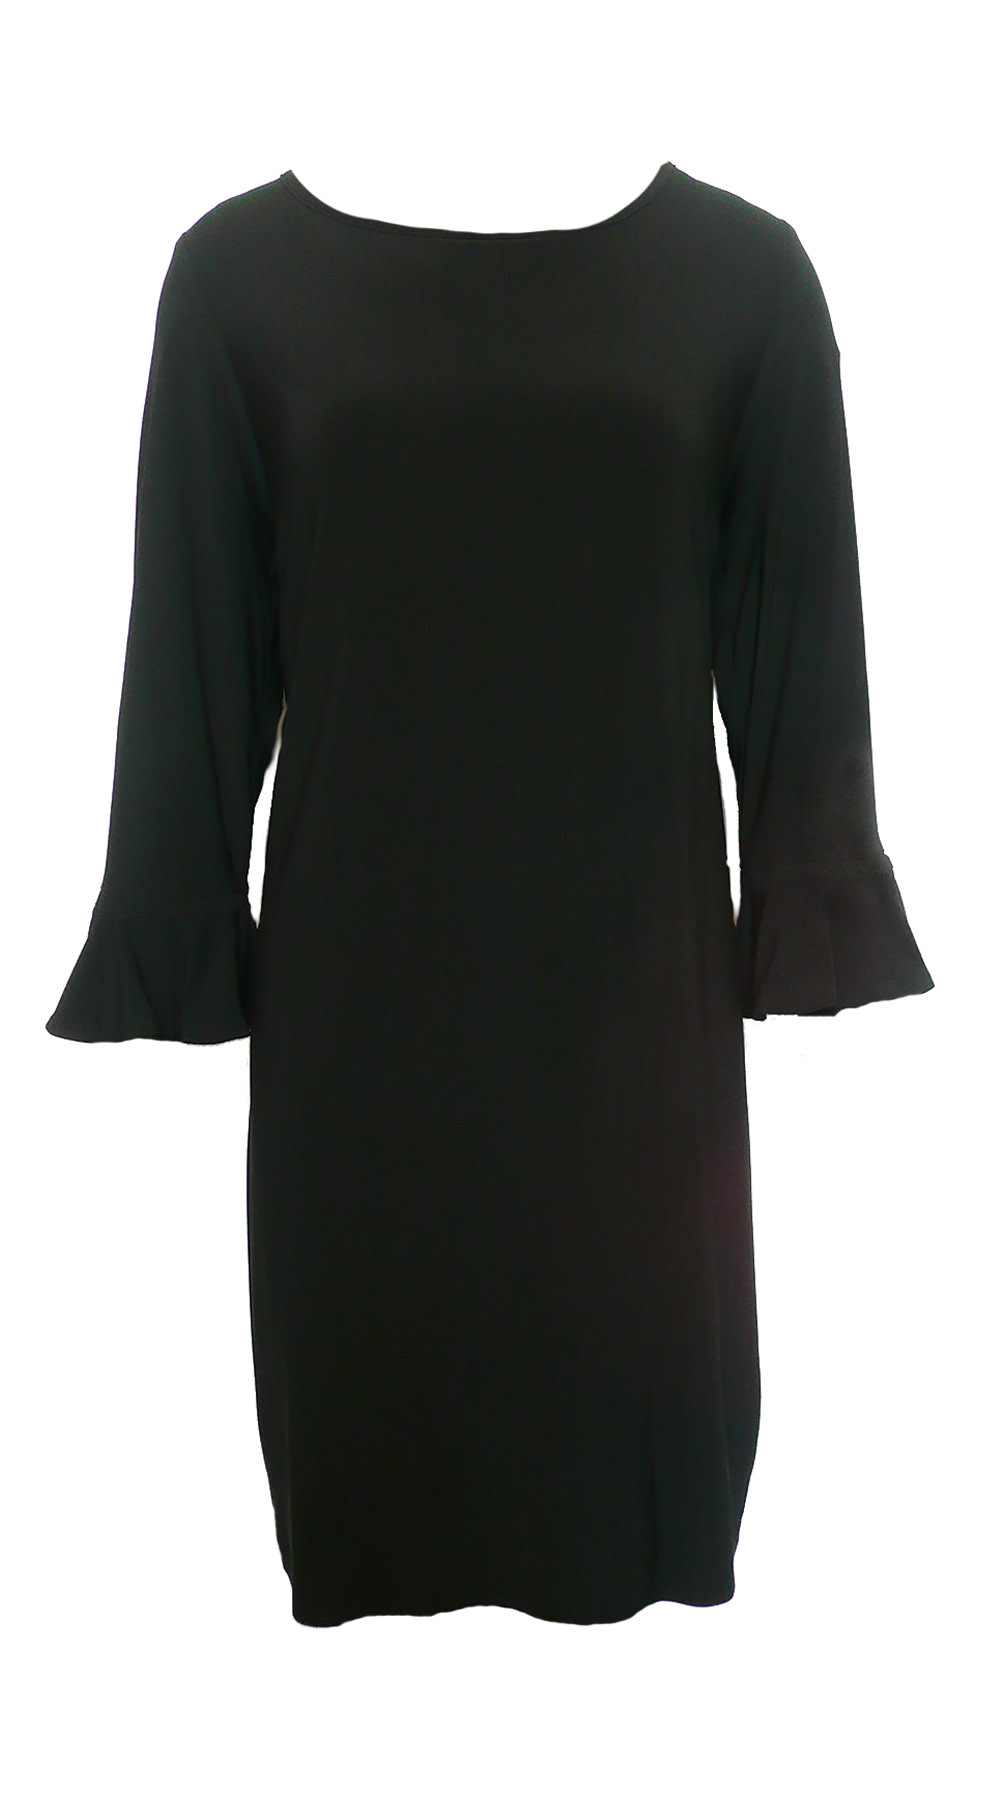 dress blk ruffle sl.jpg